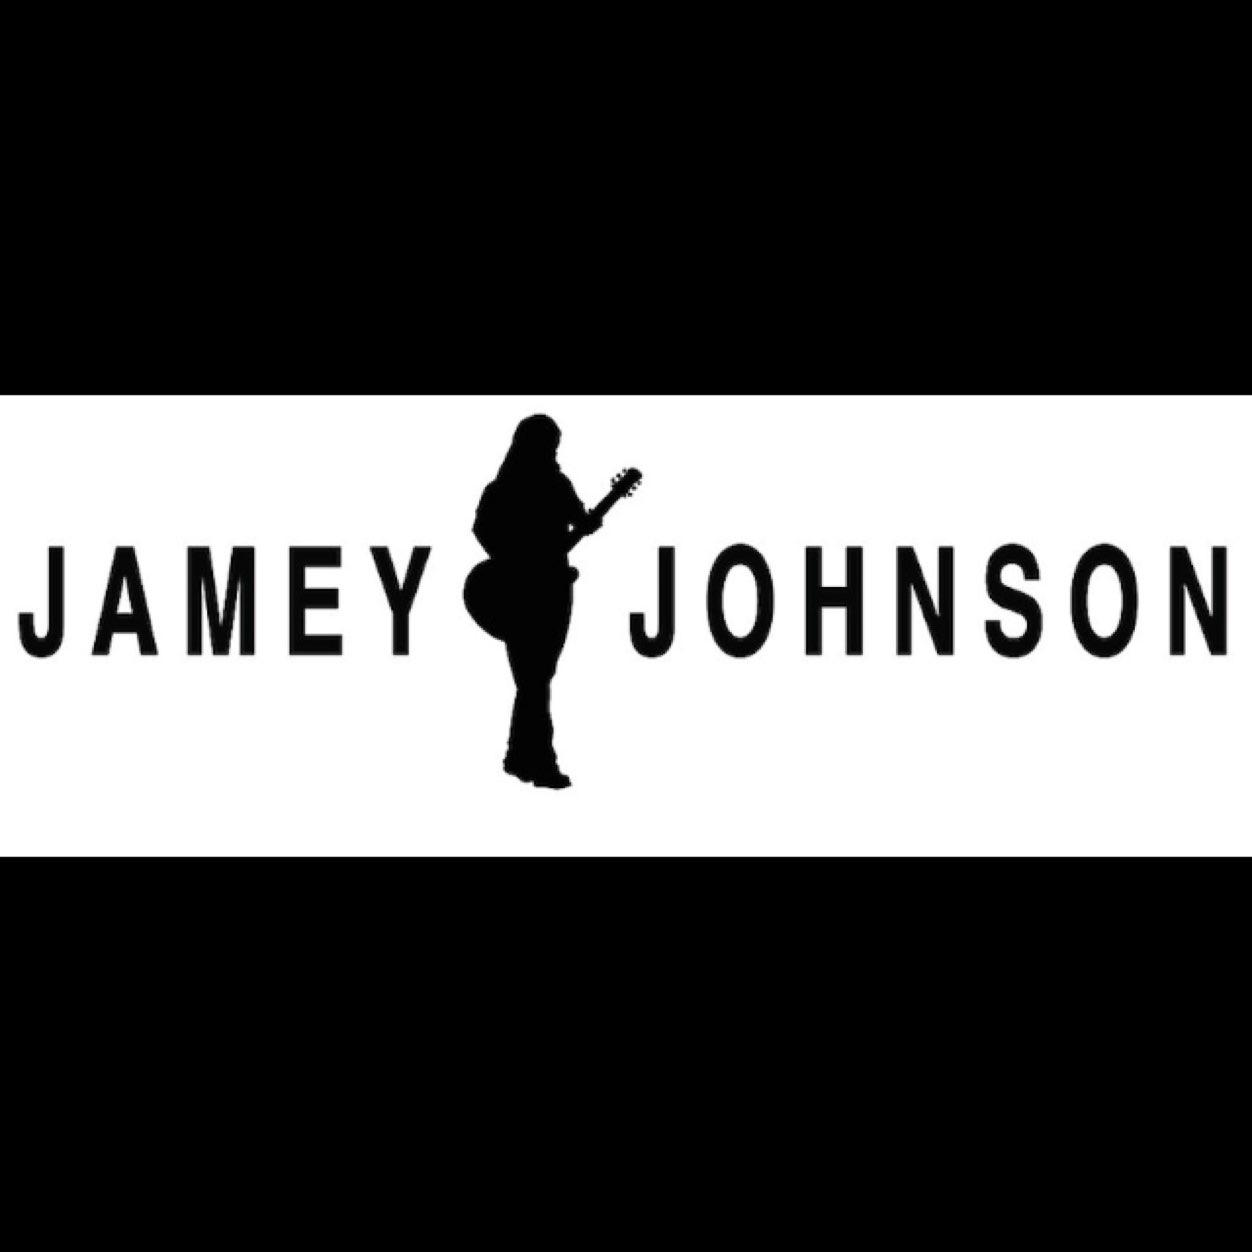 This is the Official Jamey Johnson Twitter profile.